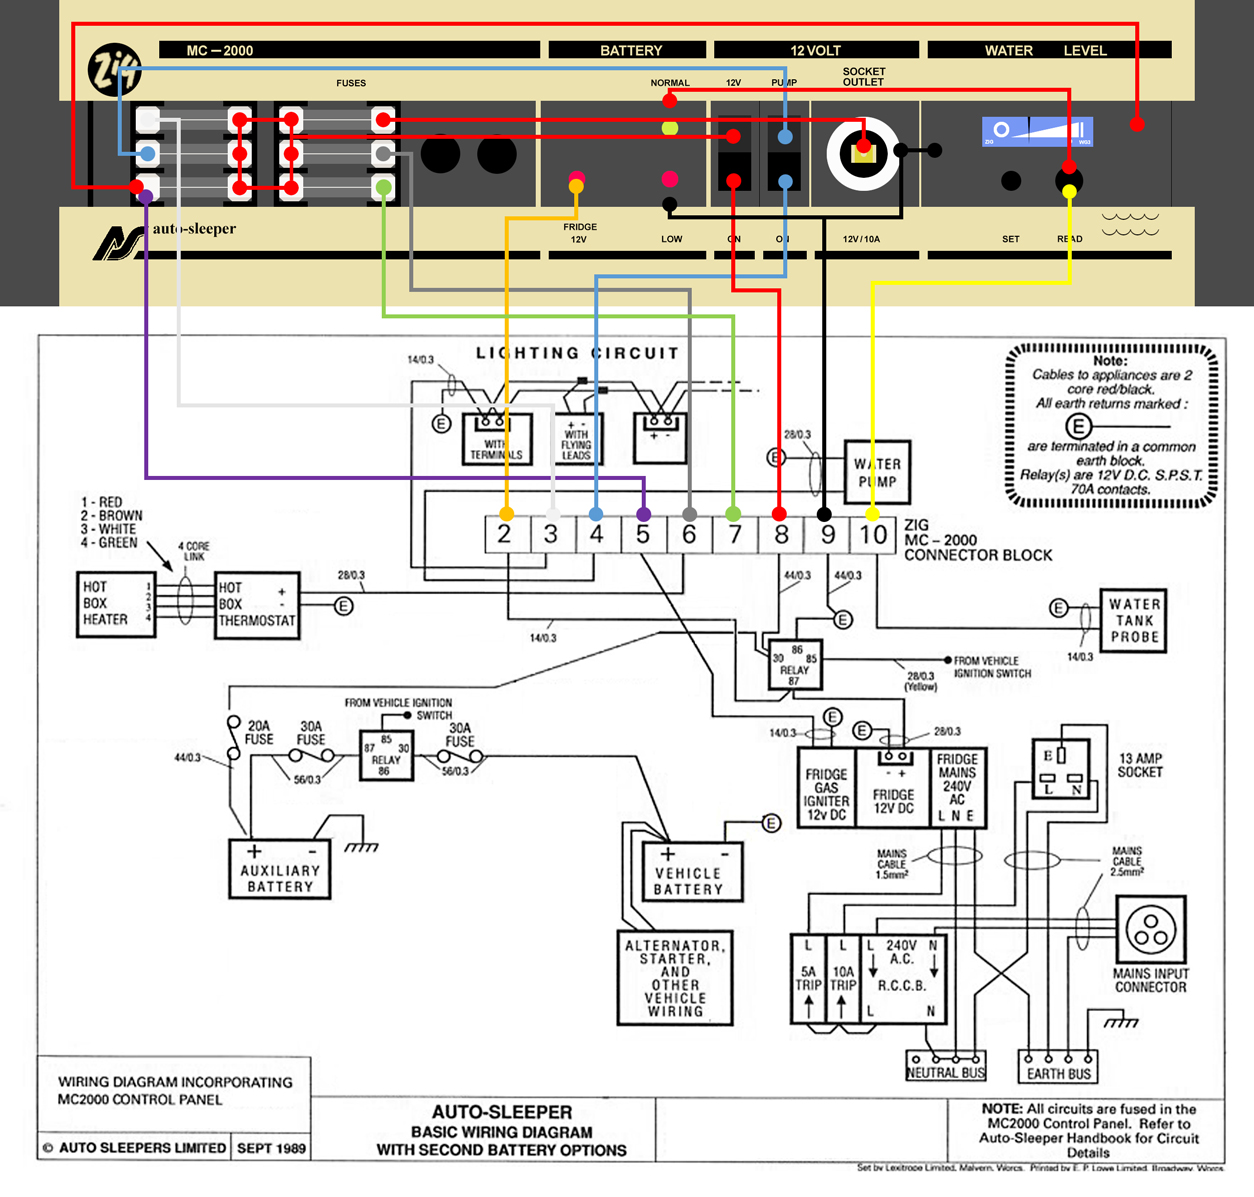 zig mc 2000 full wiring zig mc 2000 wiring vw t25 sir adventure 13 amp socket wiring diagram at fashall.co